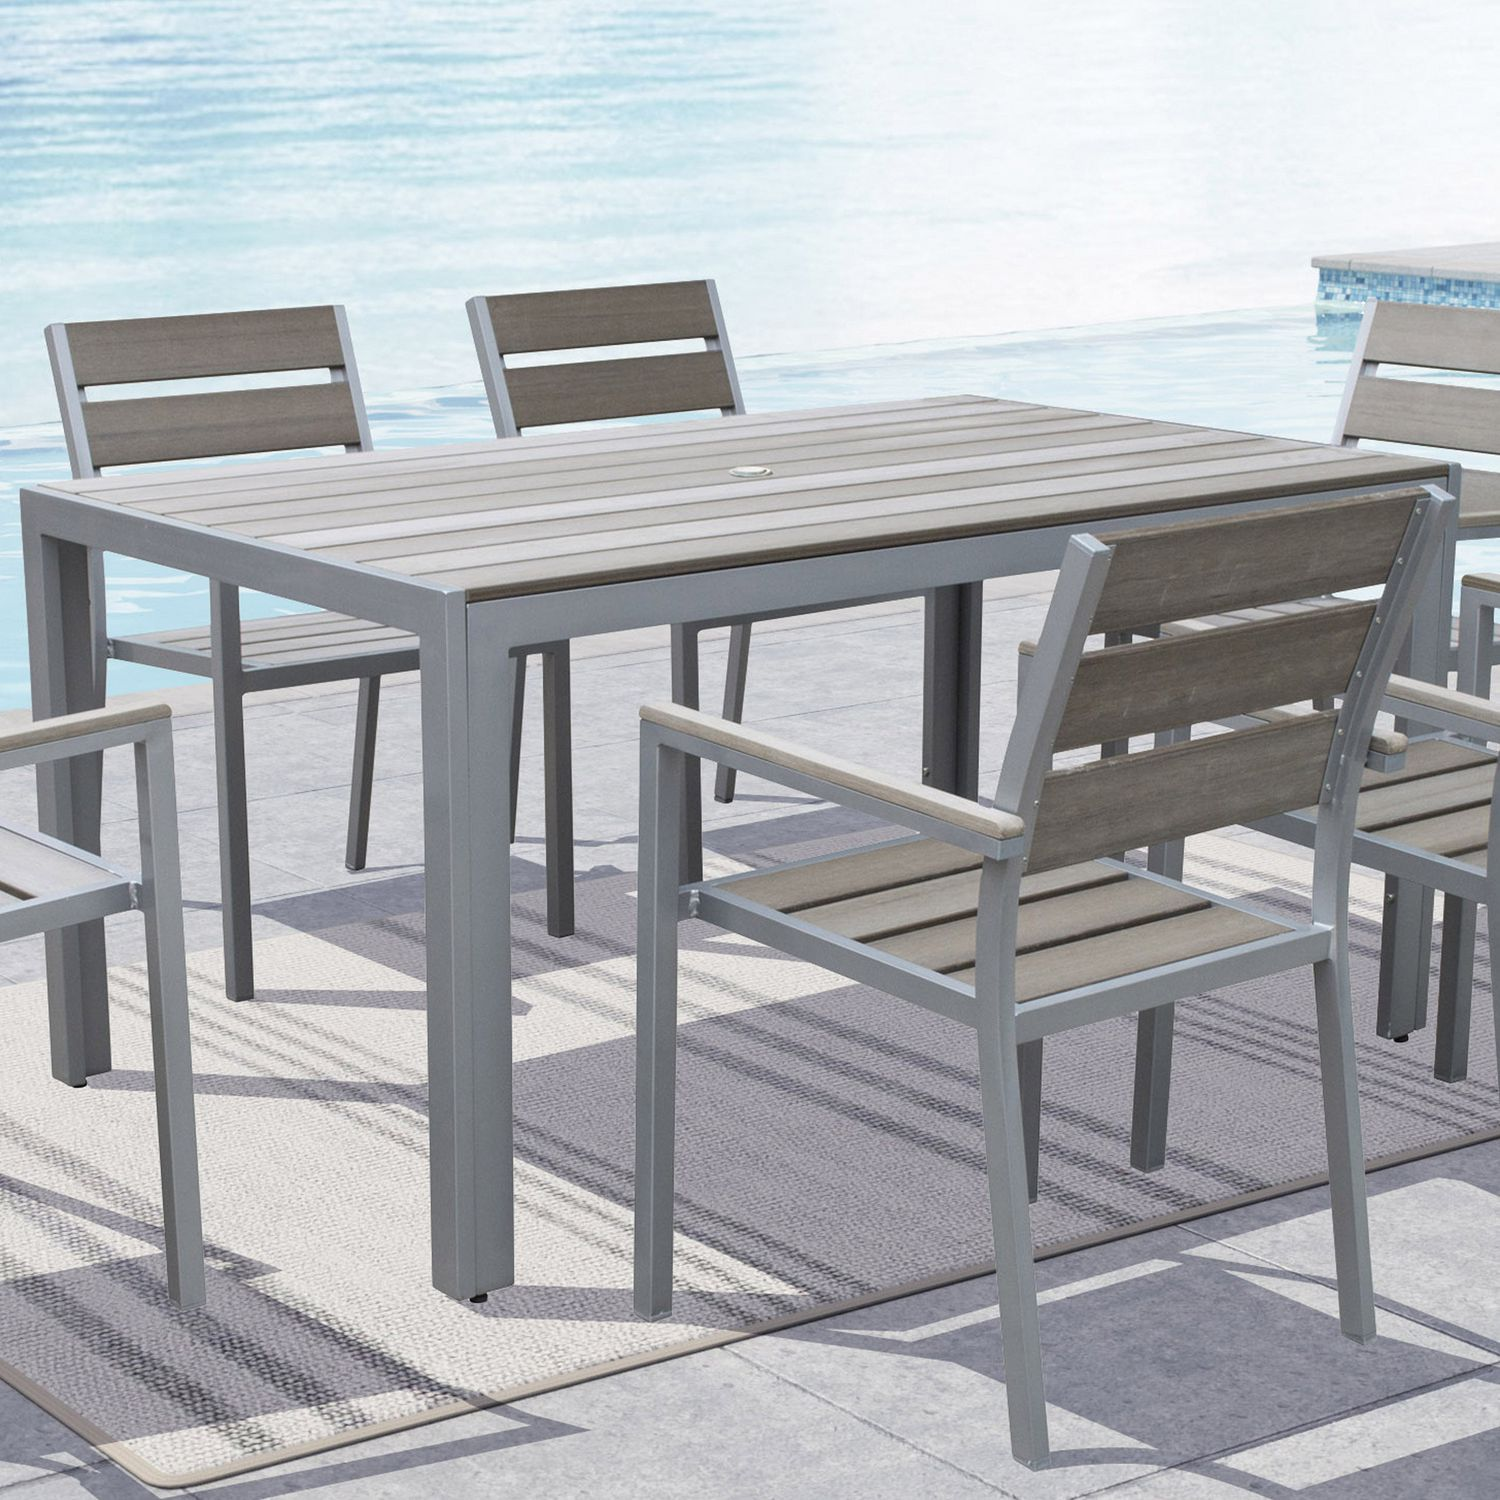 Patio furniture cushions 22 inches round free home design ideas - Corliving Pjr 572 T Gallant Sun Bleached Grey Outdoor Dining Table